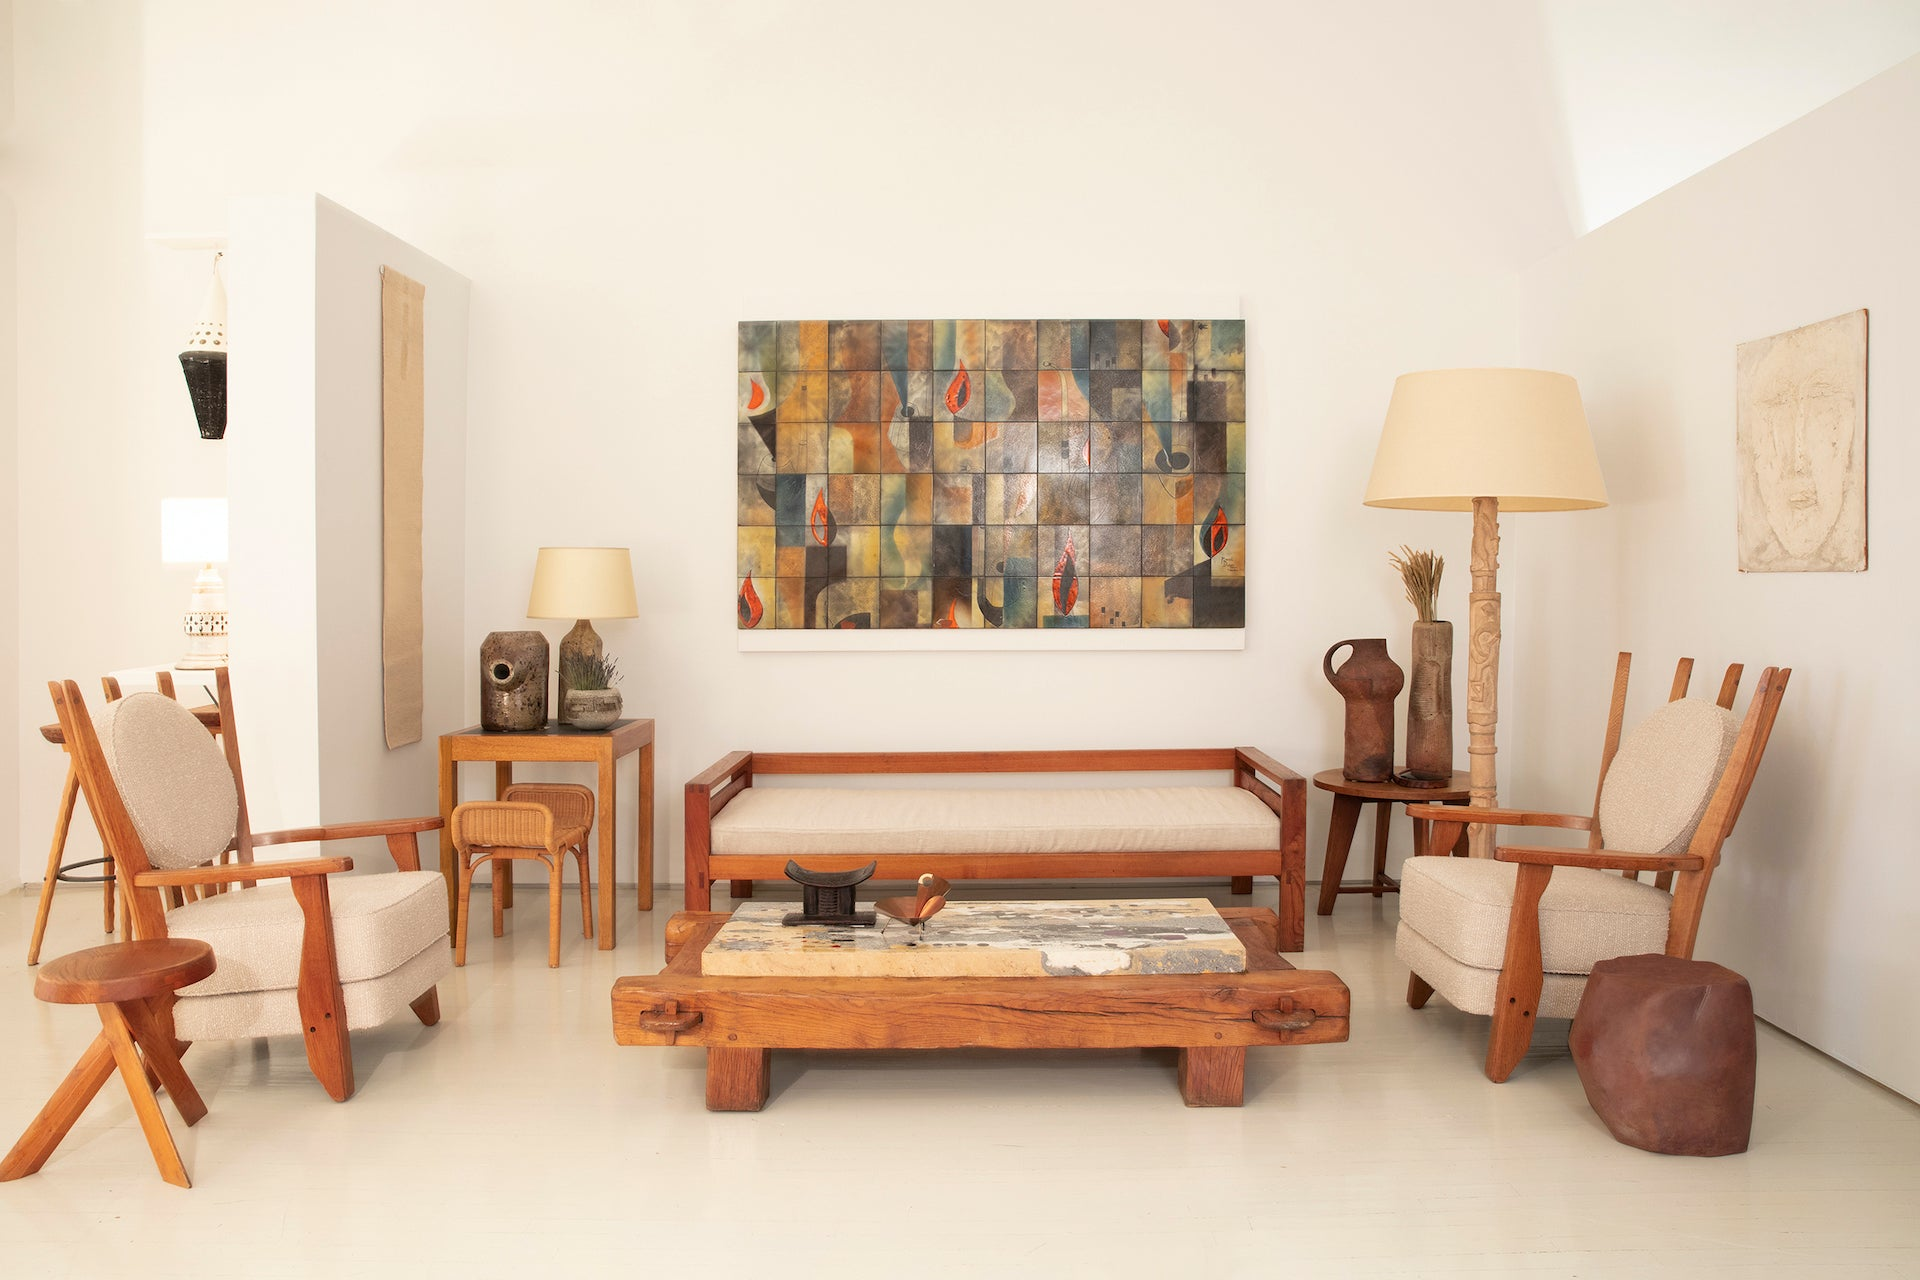 House in Provence at Magen H. Photo © Tiphaine Brun-Eppel; courtesy of Magen H Gallery